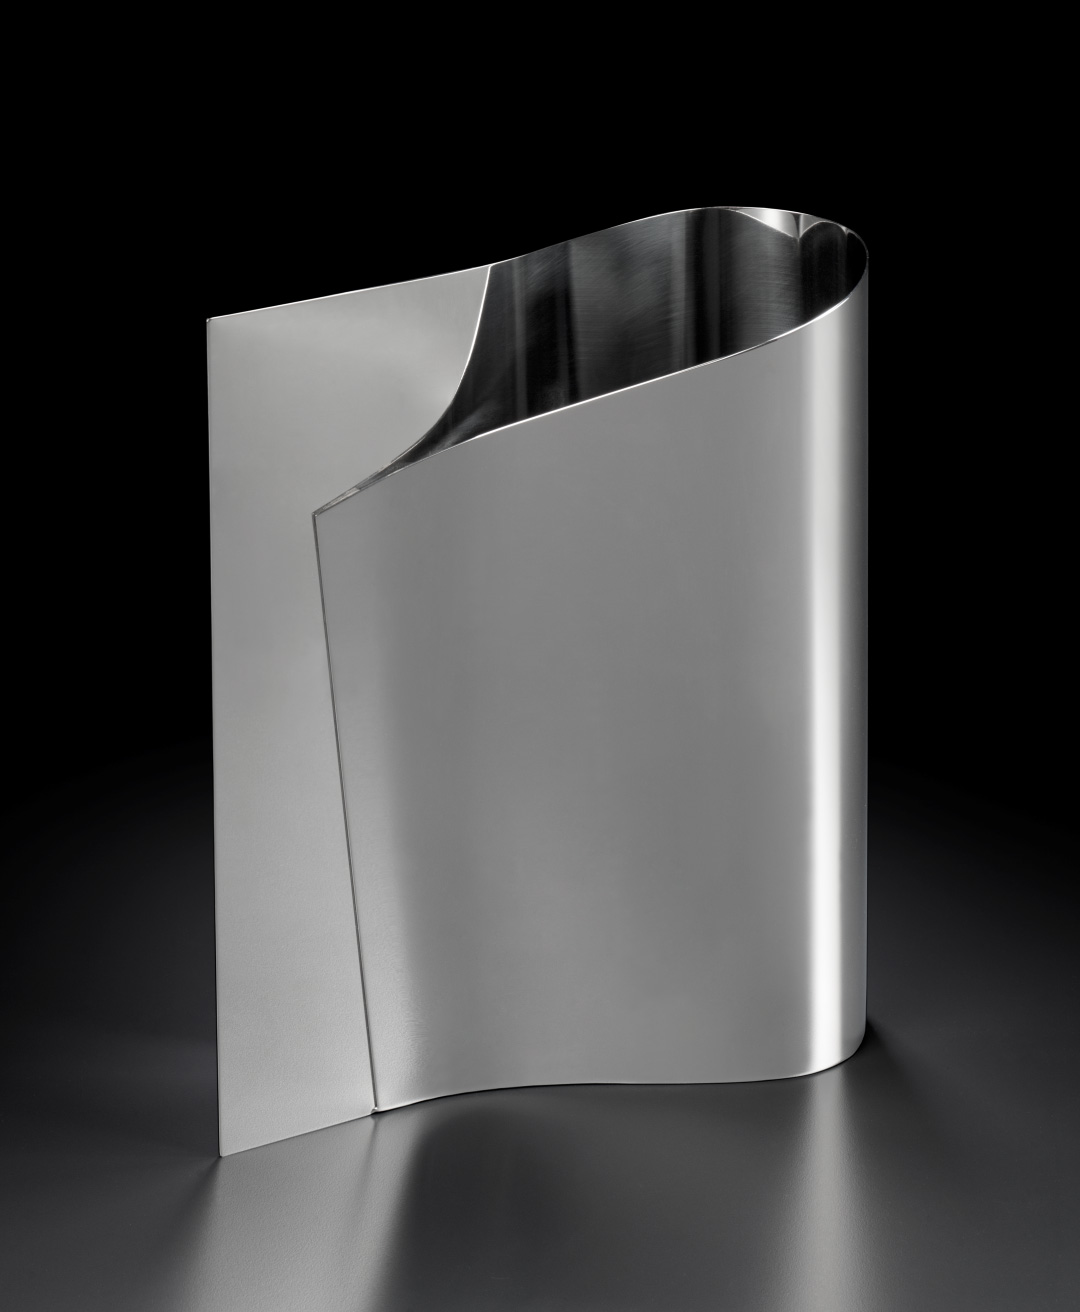 Vase. The two ends of a sheet of steel have been brought together on one side, leaving a rounded opening on the other.